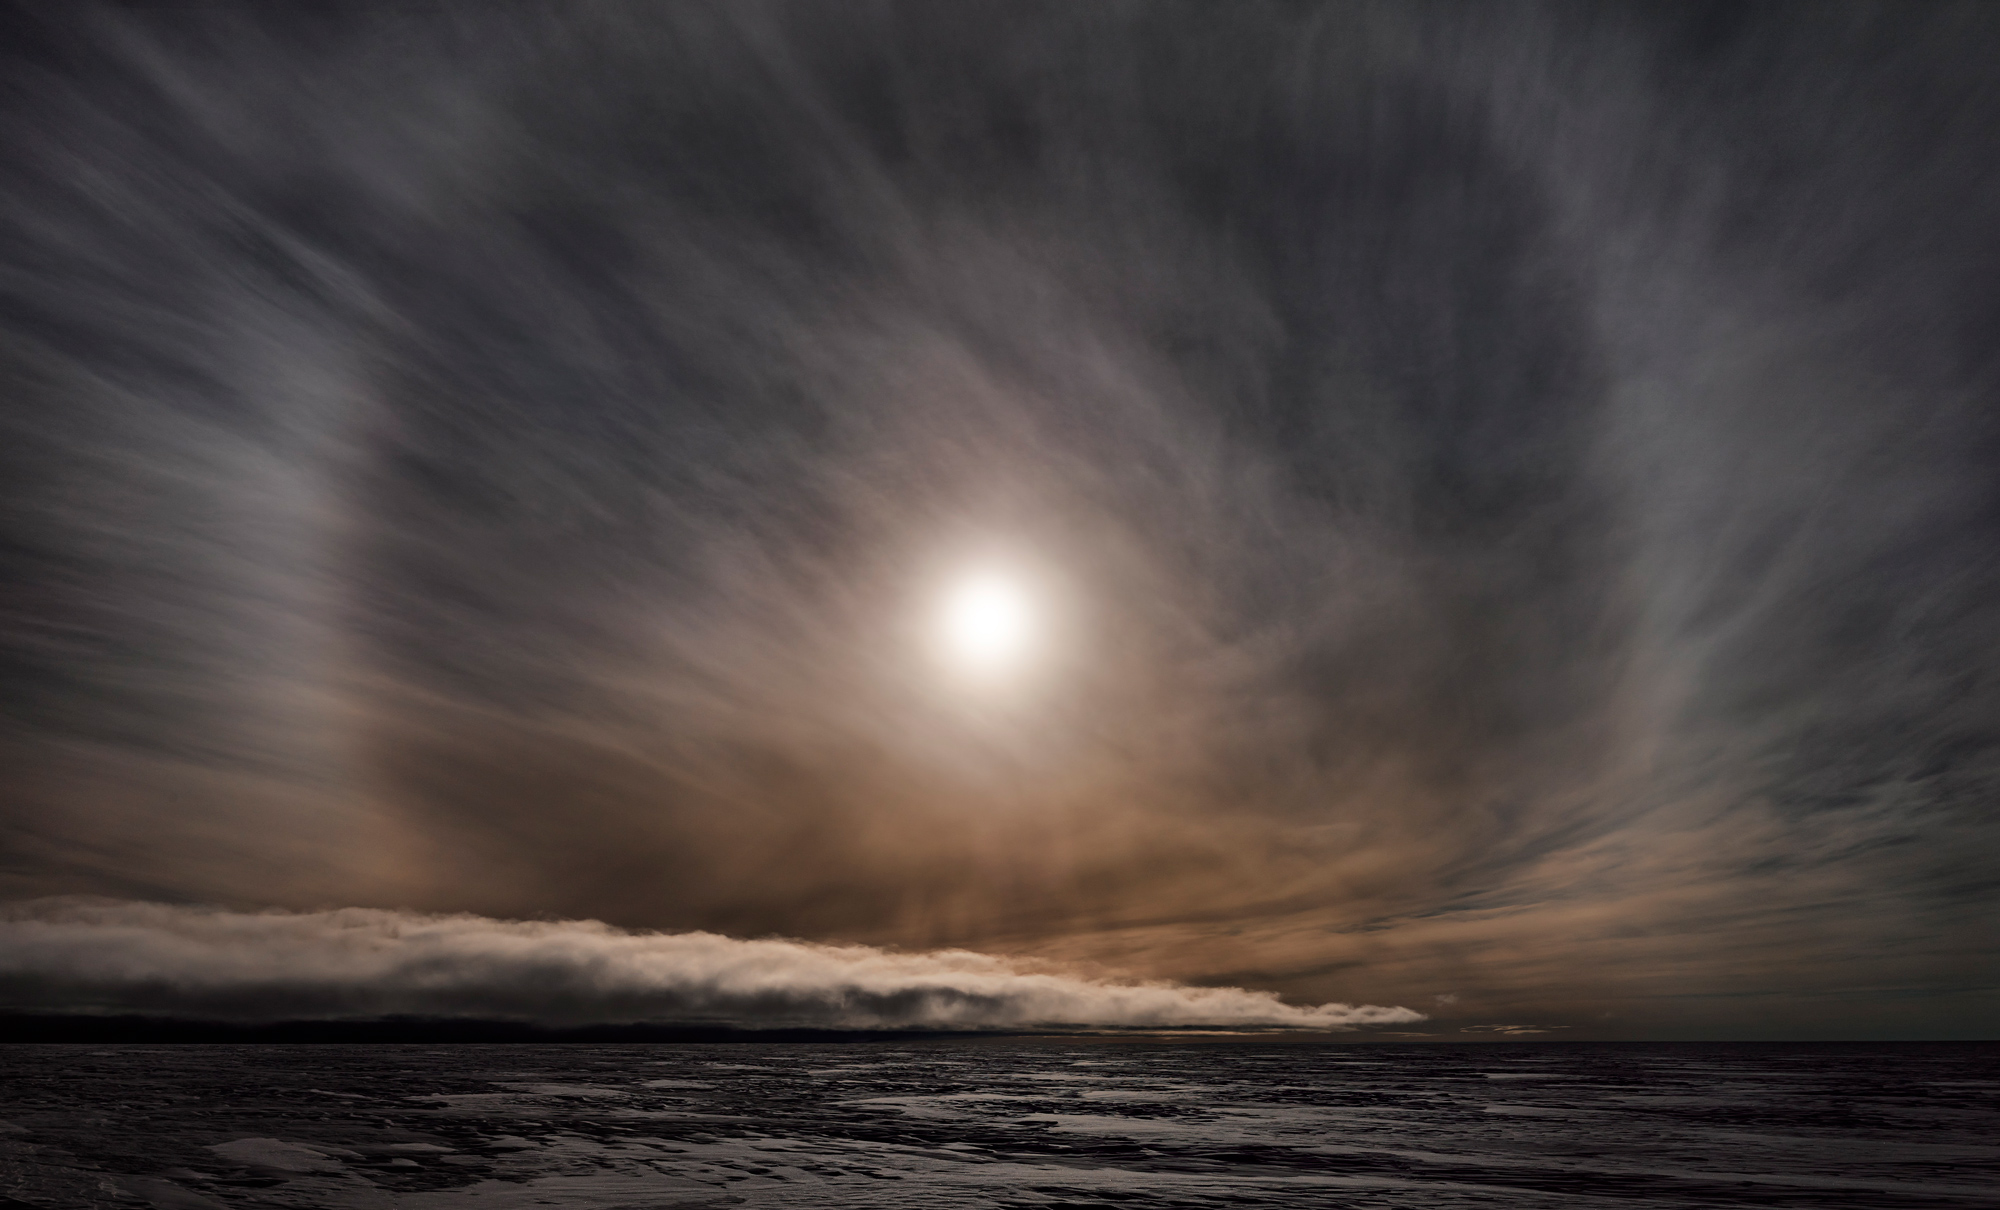 Icesheet #2564, late sun with 22˚ halo, 120cm x 198cm, Digital Pigment Print, Edition of 7, 2013